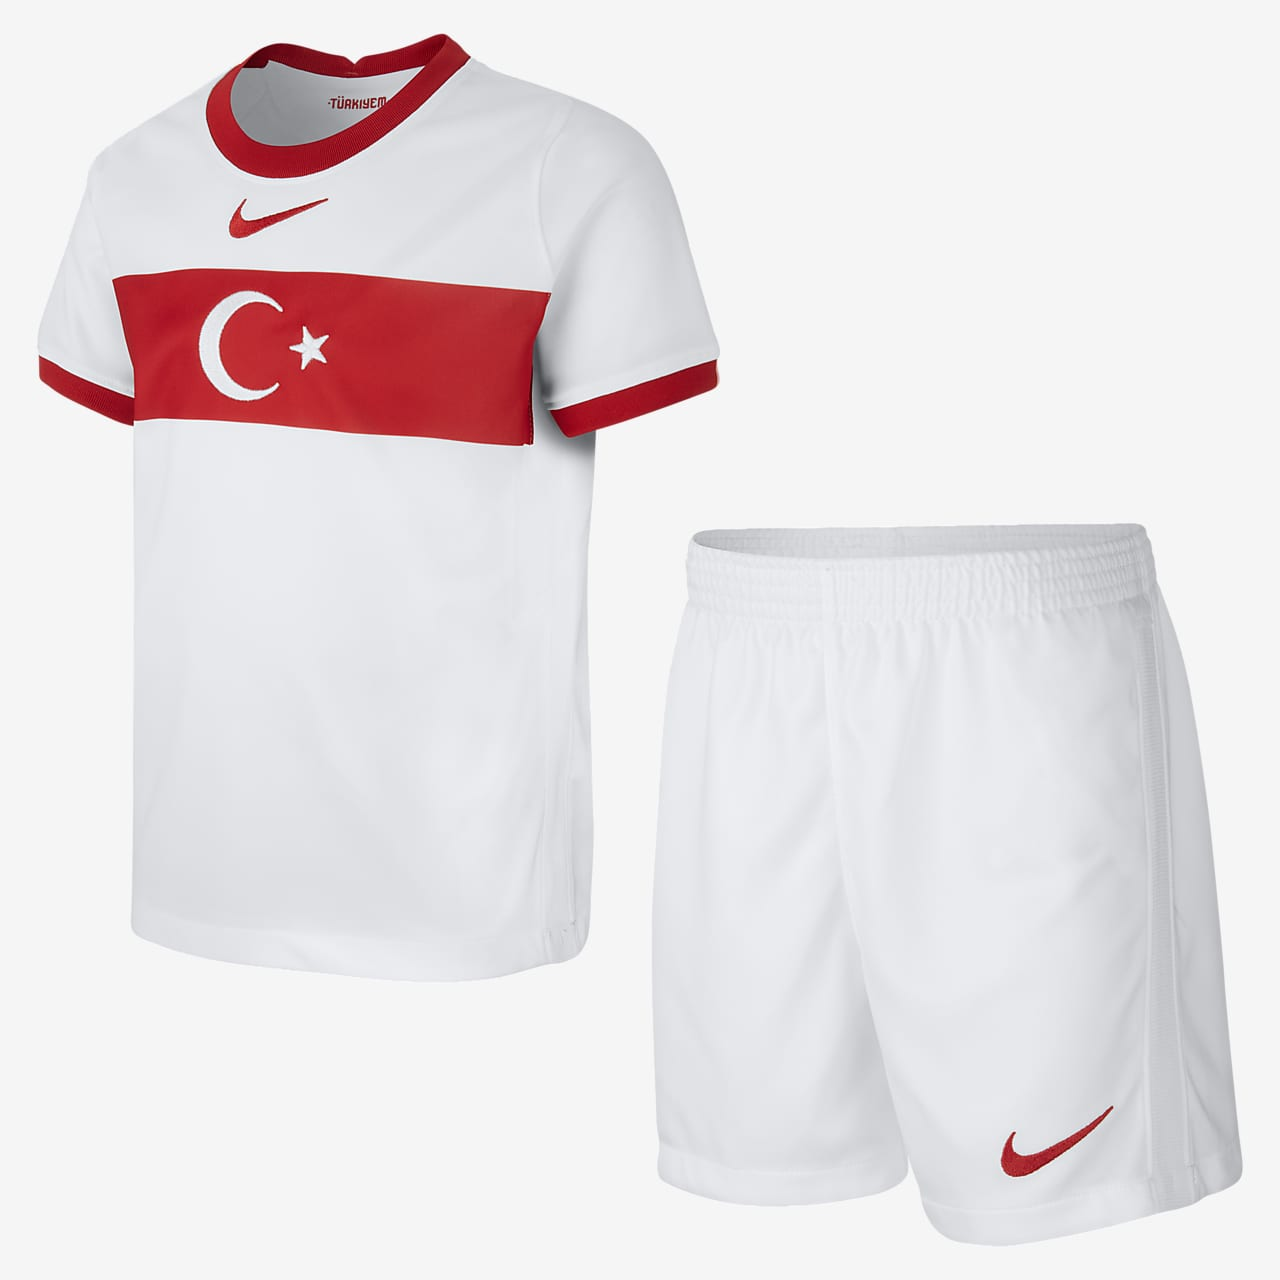 Turkey 2020 Home Younger Kids' Football Kit